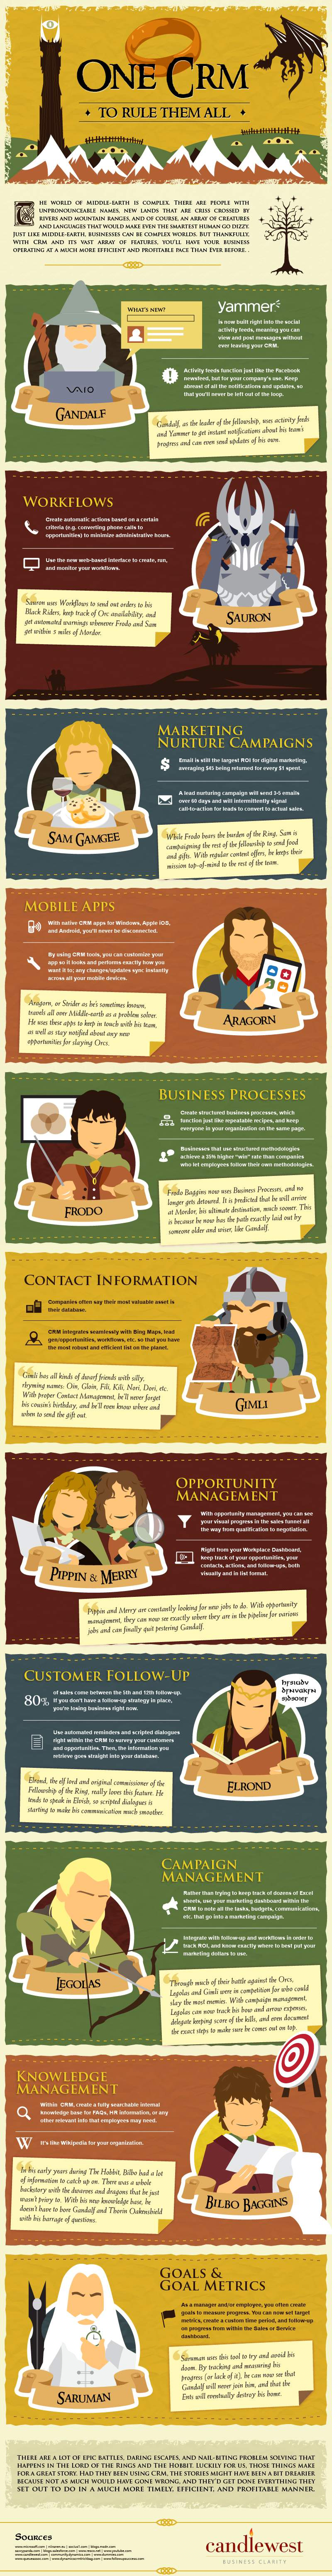 Trujay One CRM to Rule Them All